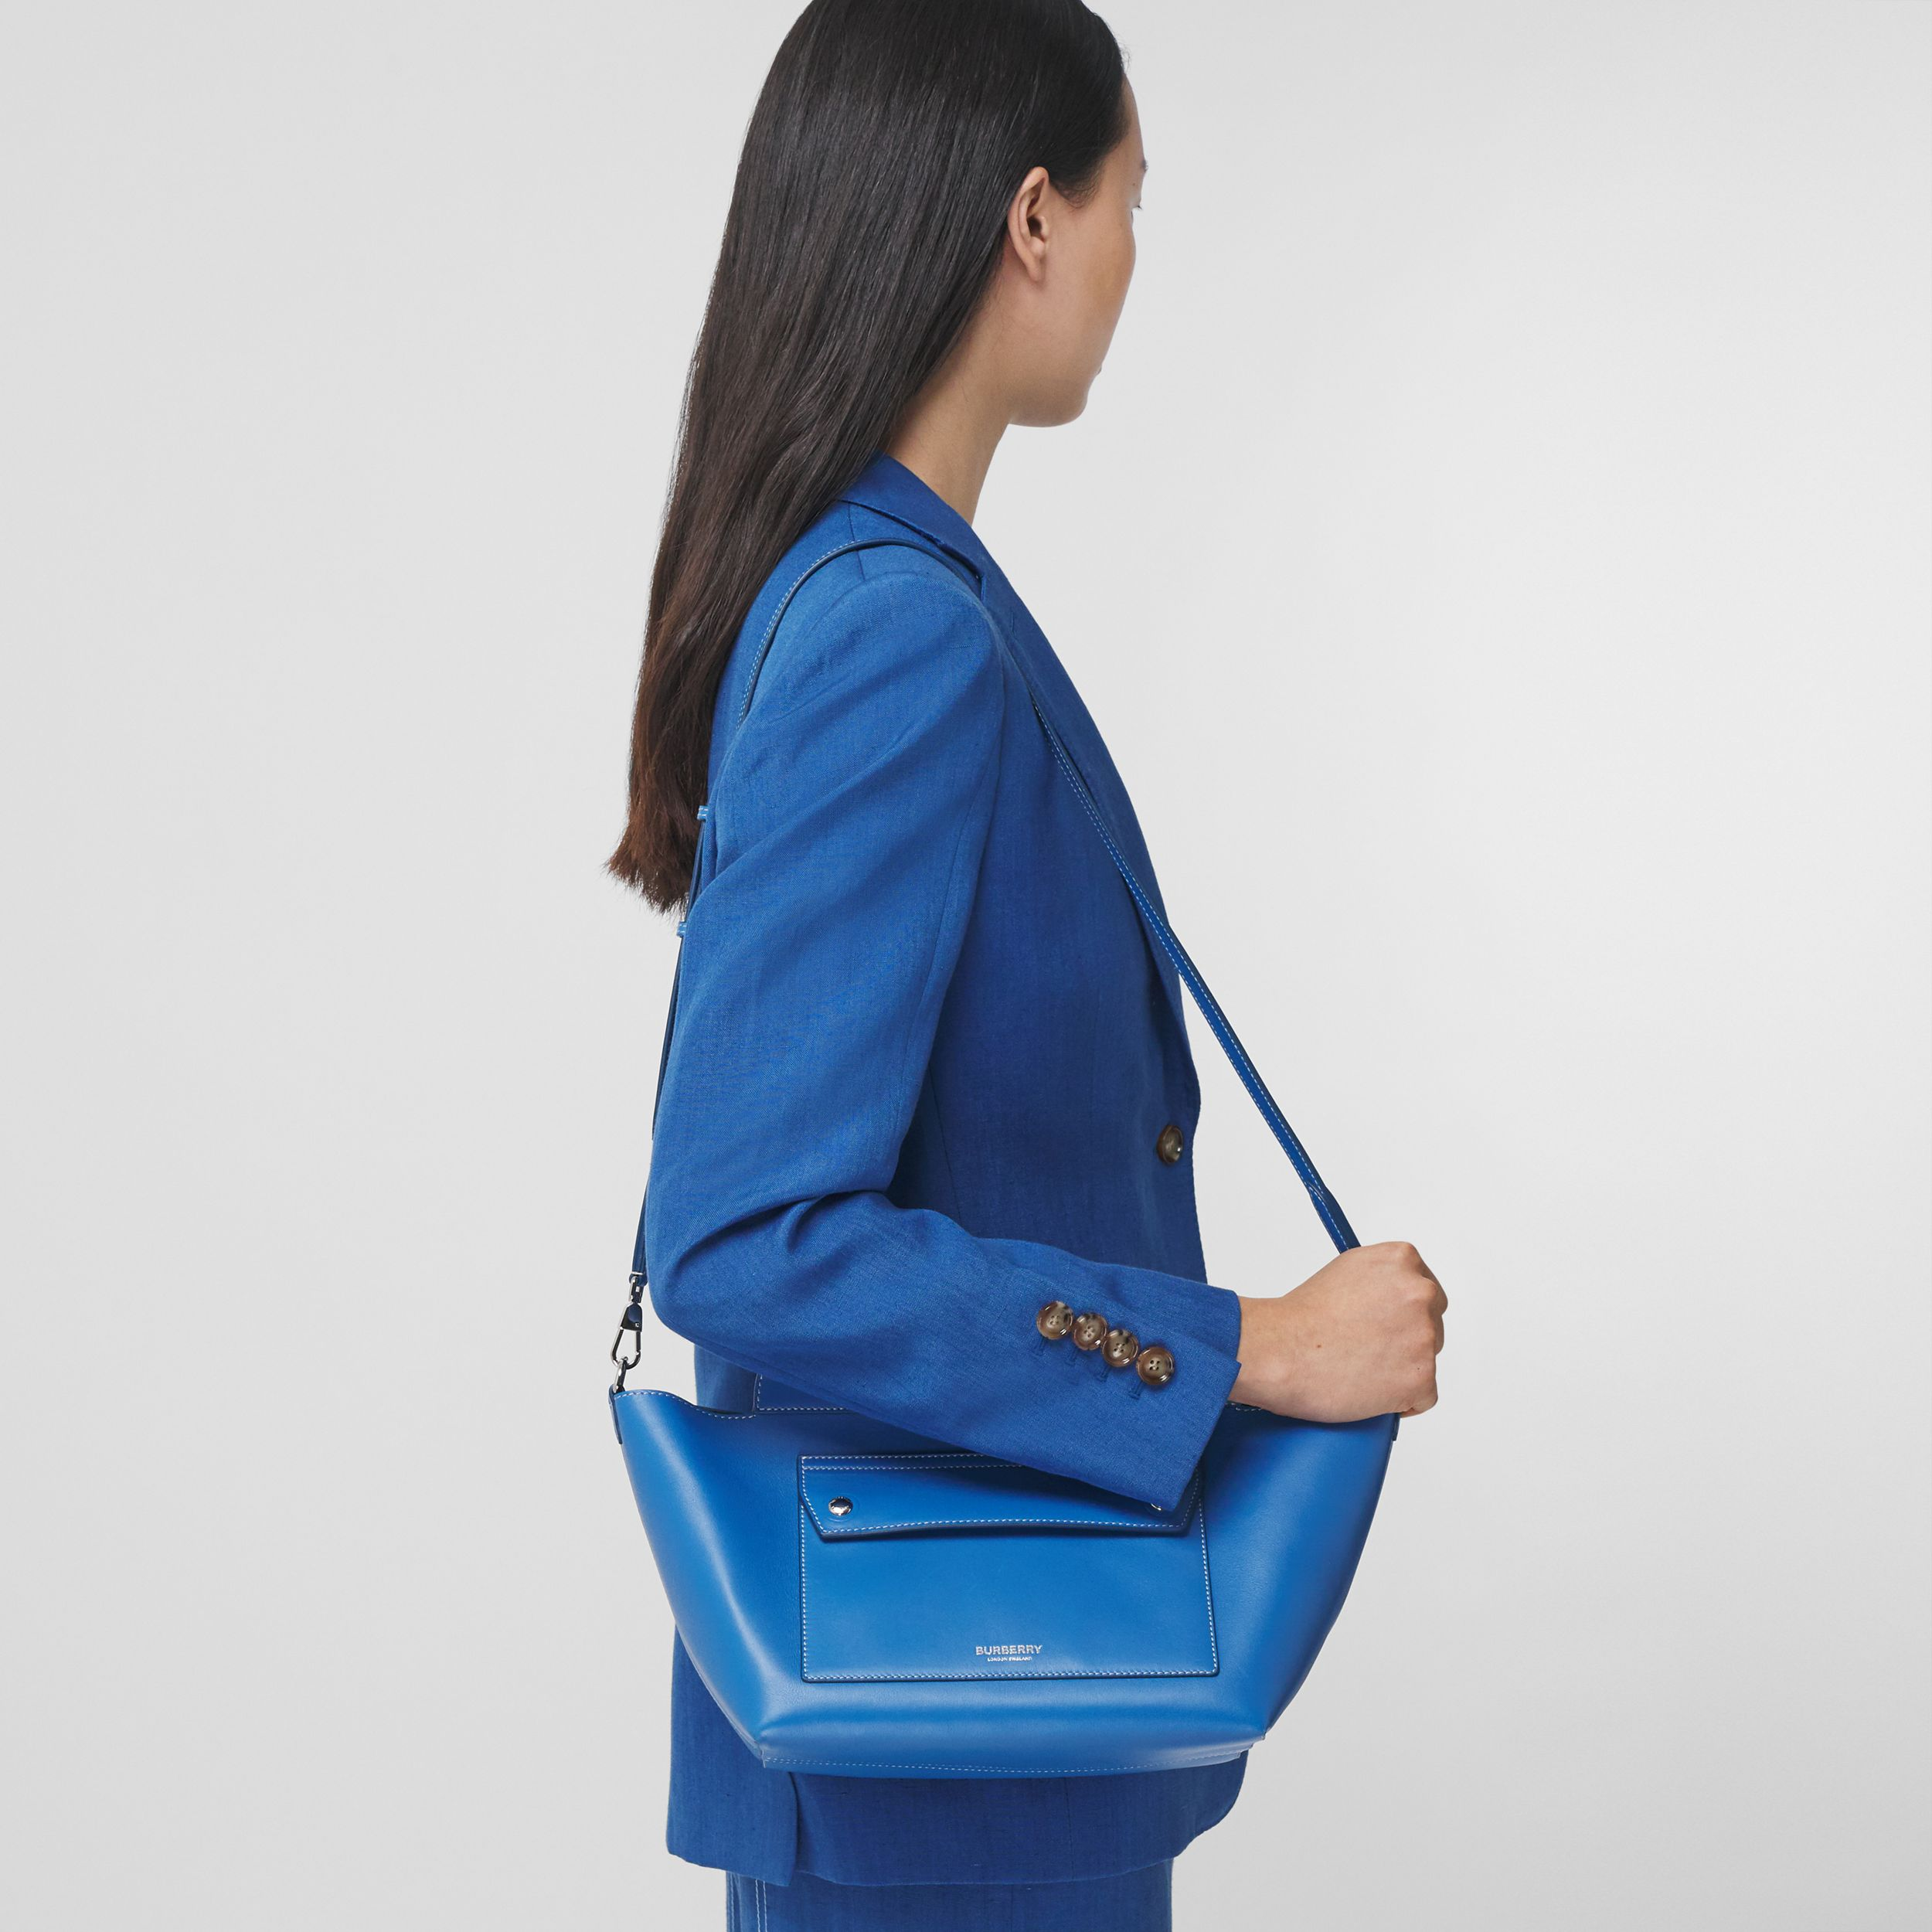 Mini Leather Soft Pocket Tote in Warm Royal Blue - Women | Burberry Australia - 3